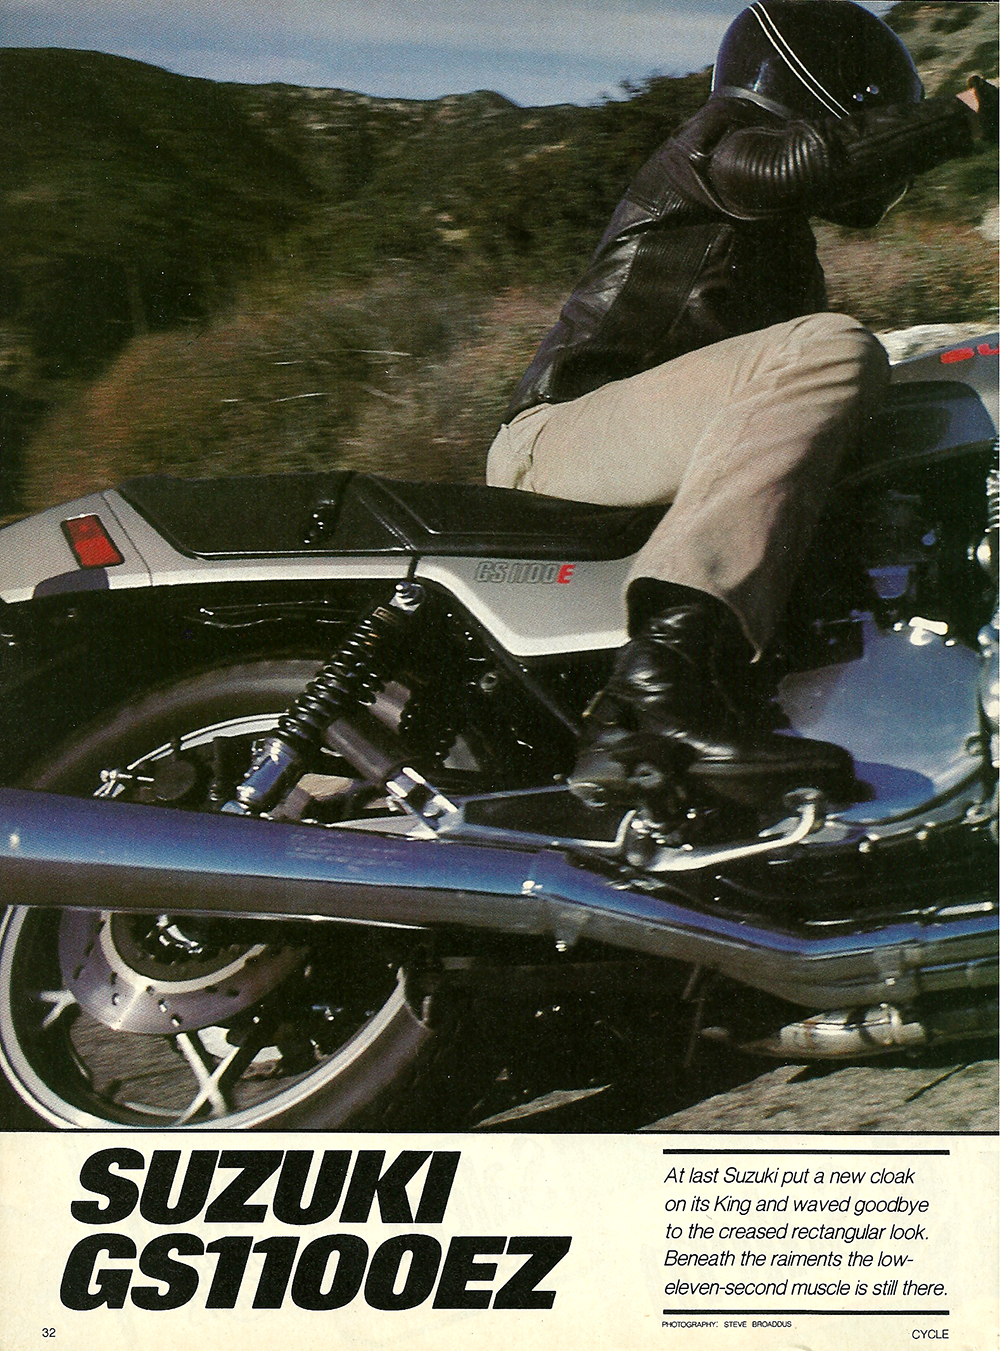 1982 Suzuki GS1100EZ road test 01.jpg